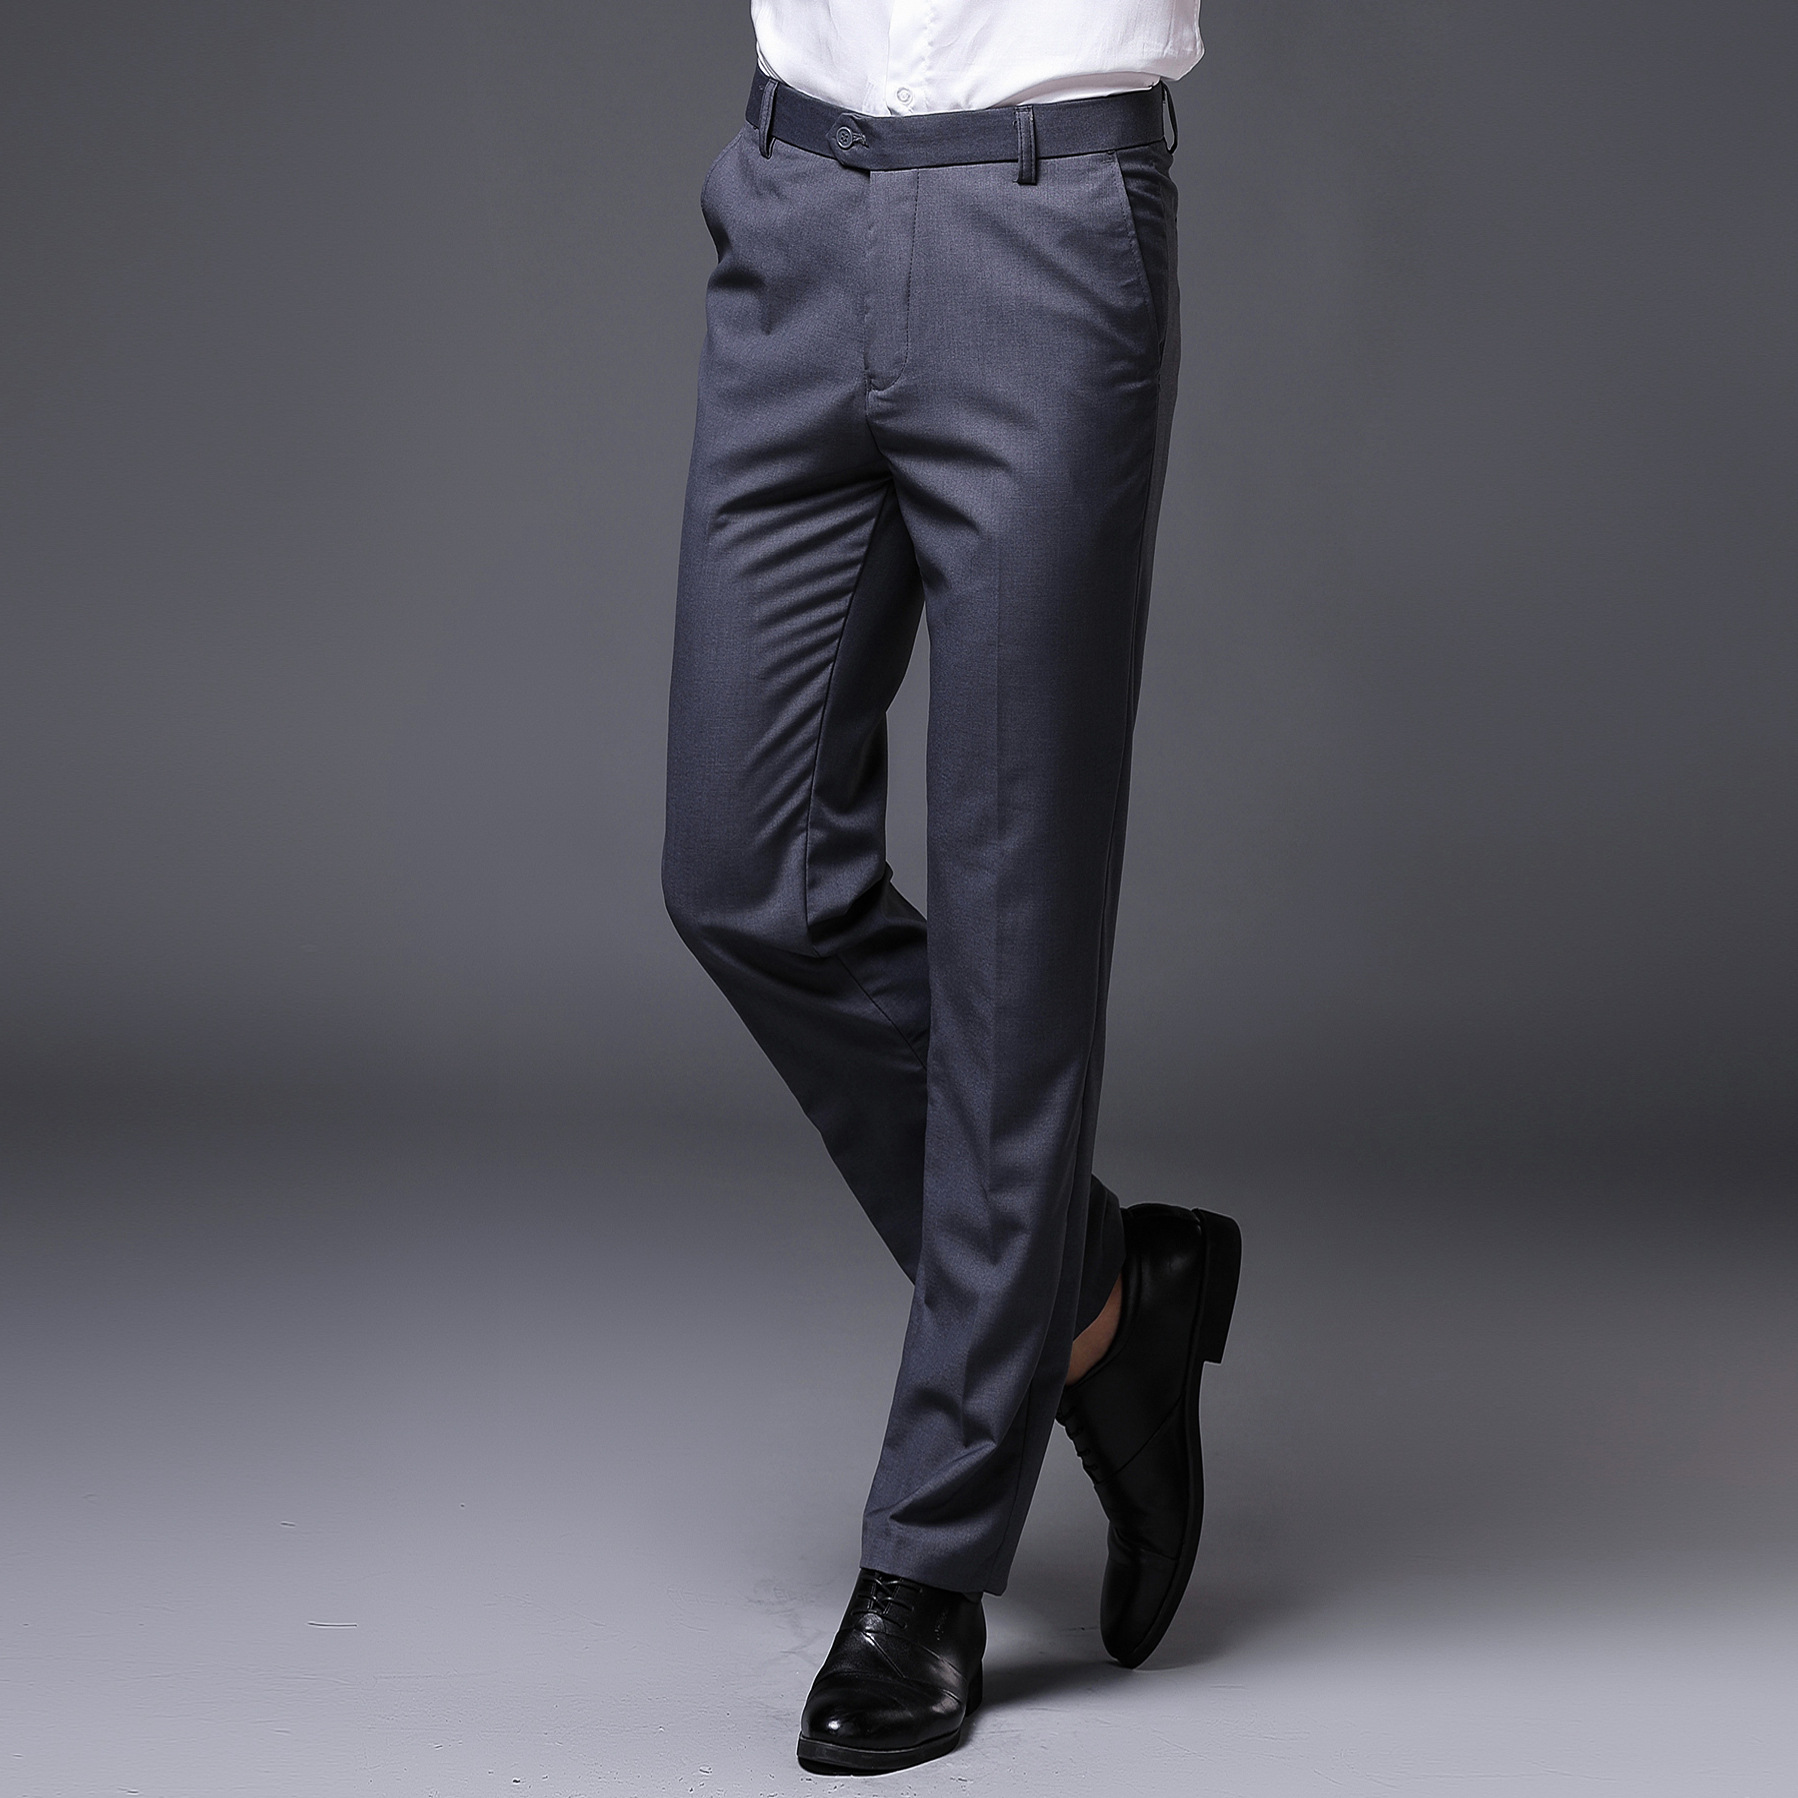 Yayu Mens Wrinkle-Free Dress Pants Stretch Casual Suit Pant Trousers